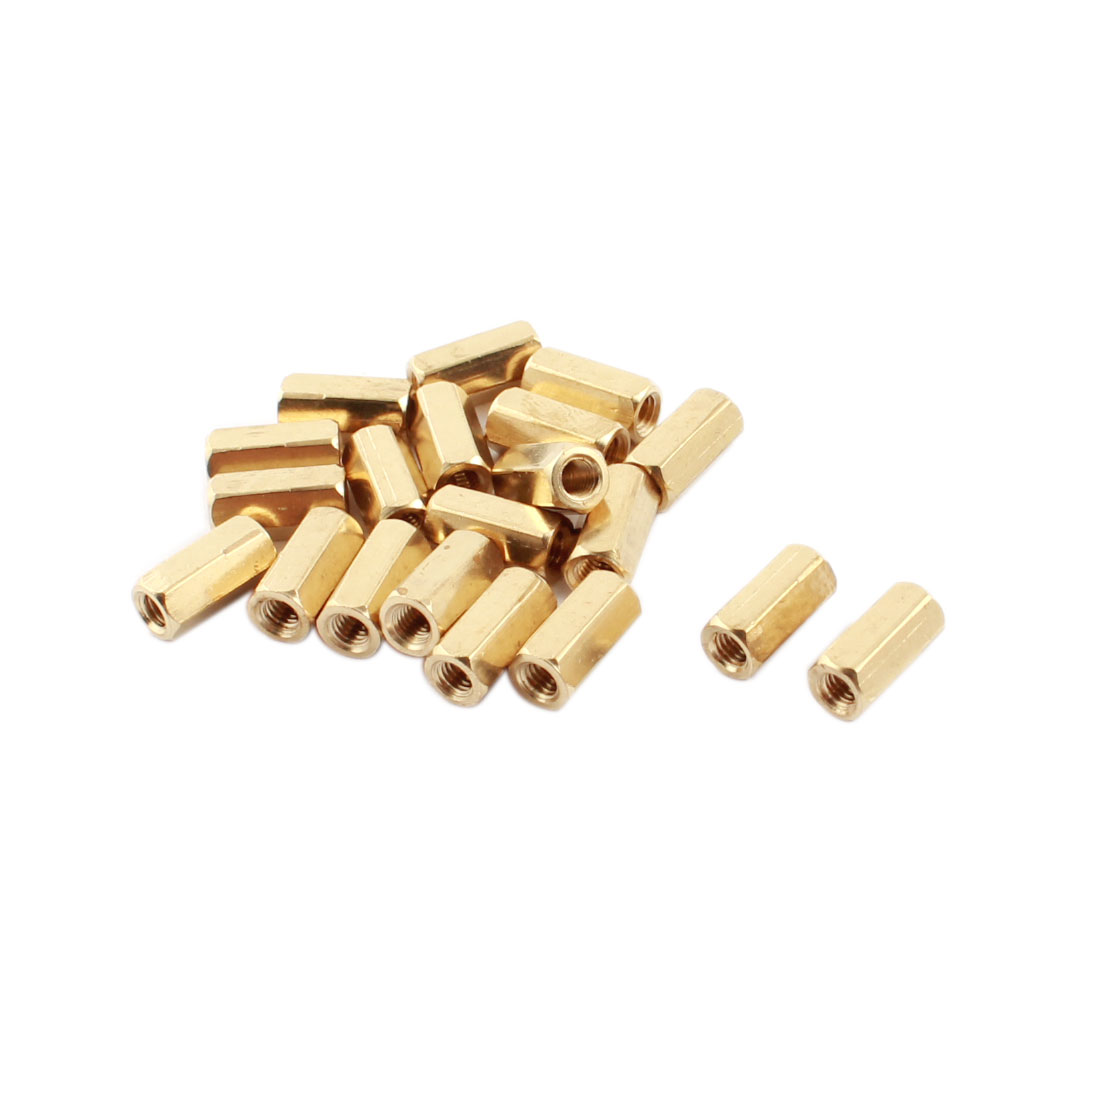 20Pcs M3 x 10mm Female Thread Dual Ends Gold Tone Brass Pillar PCB Standoff Hexagonal Nut Spacer